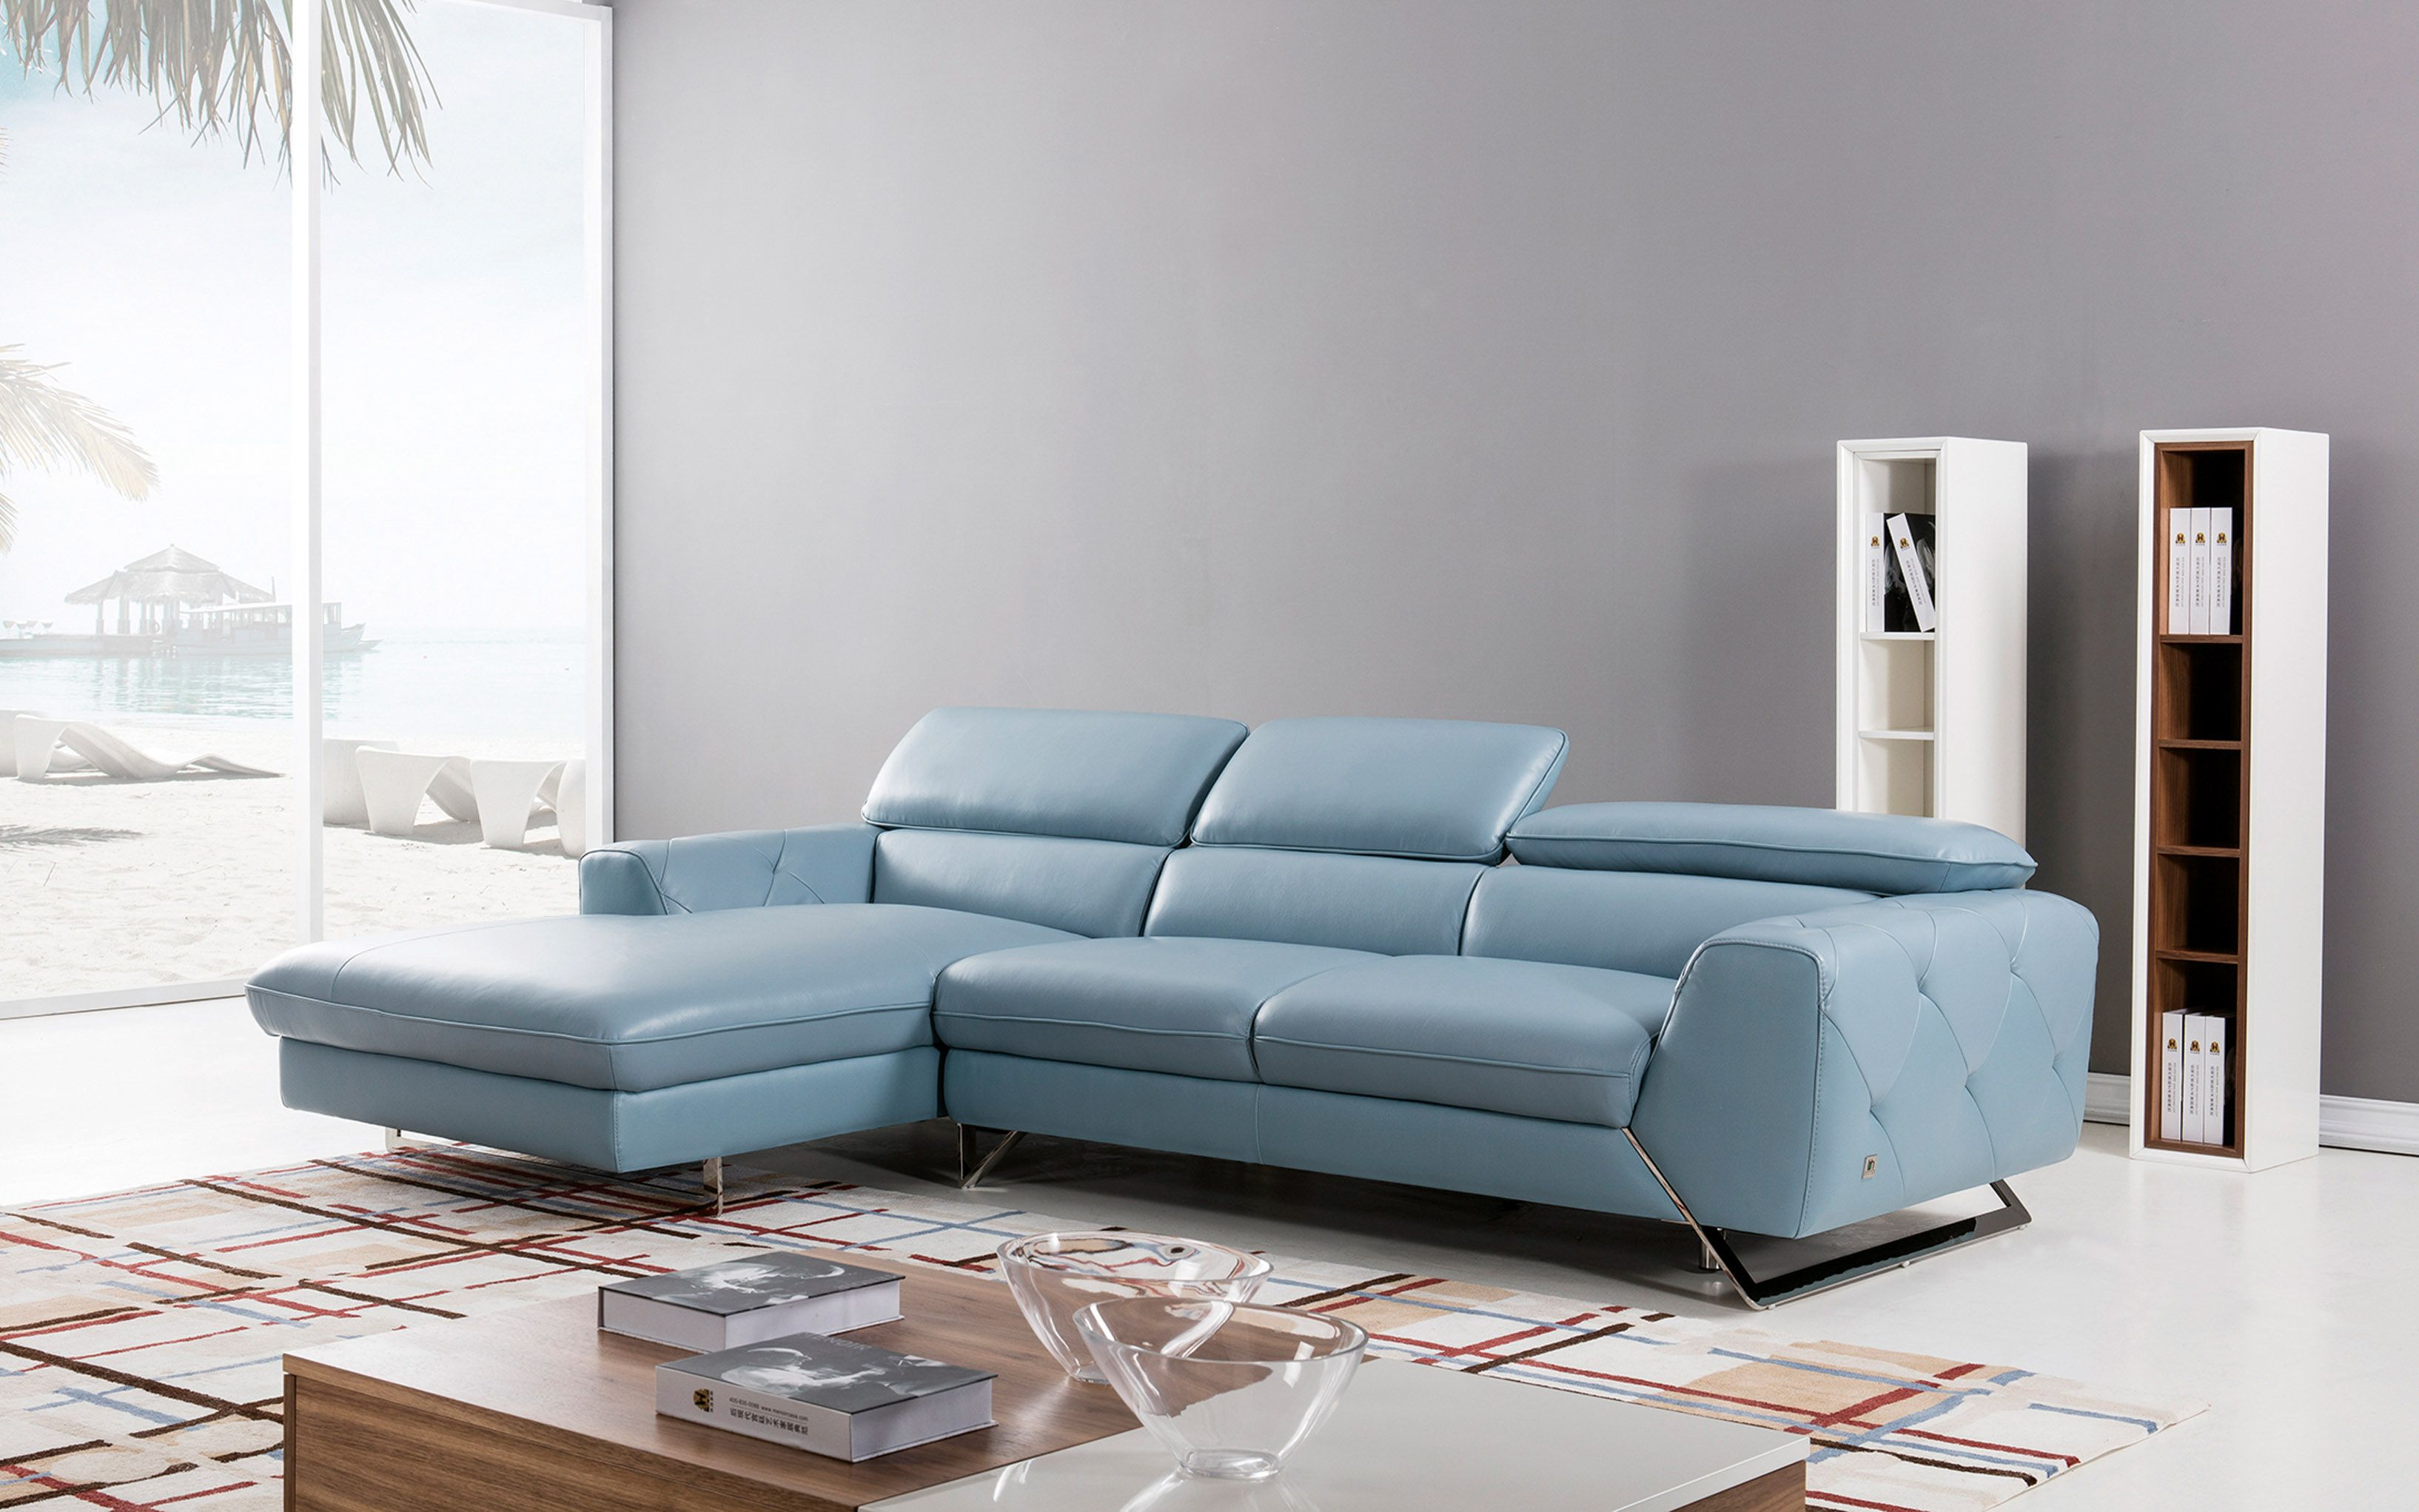 Graceful Tufted Italian Top Grain Leather Sectional Sofa Top